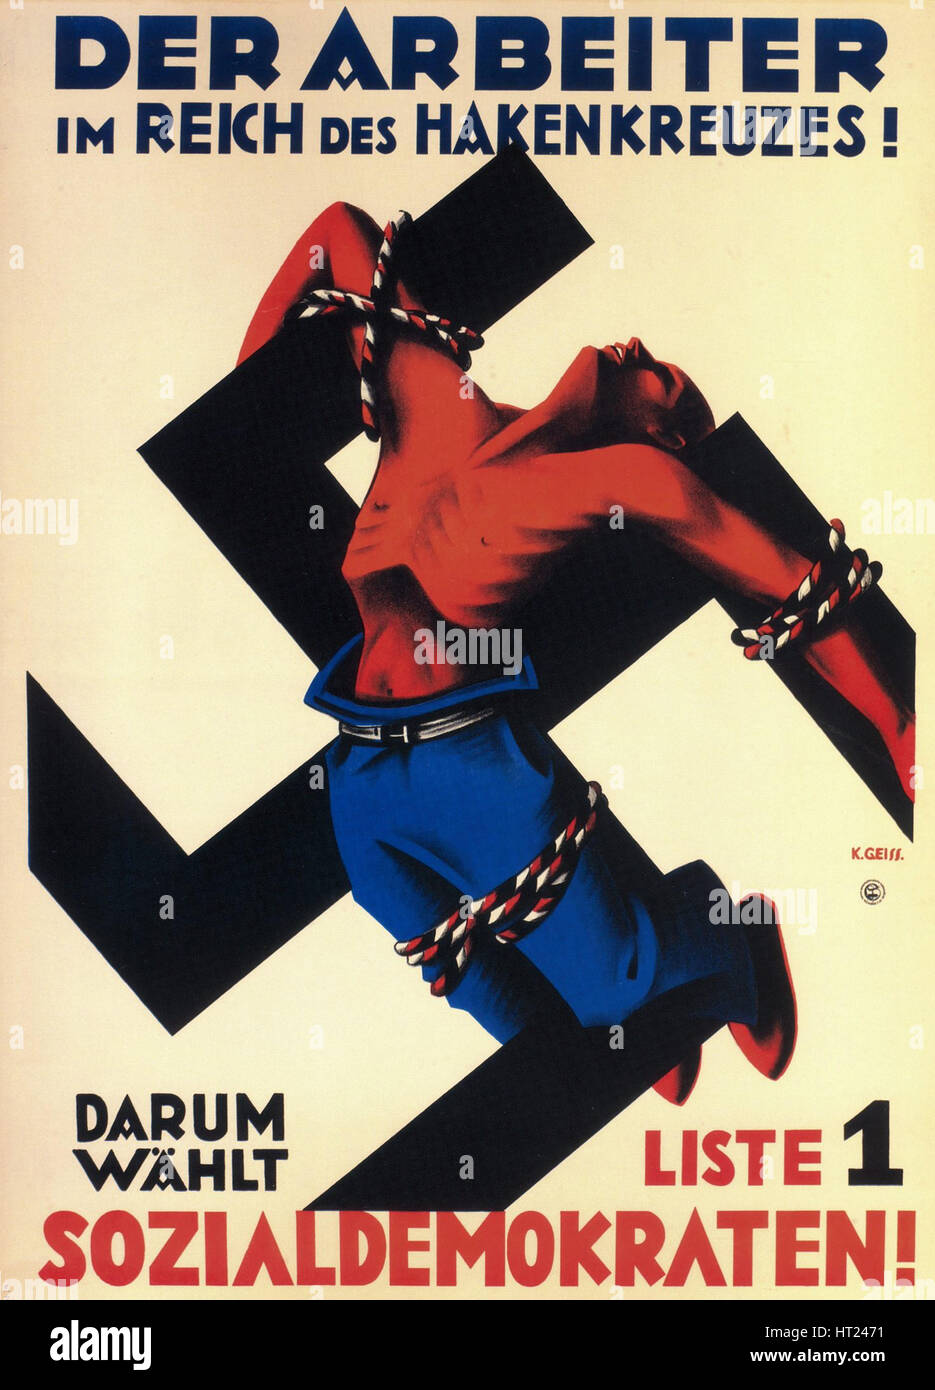 The worker under the swastika state! Therefore choose list 1, the Social Democrats!, 1932. Artist: Geiss, Karl (active - Stock Image